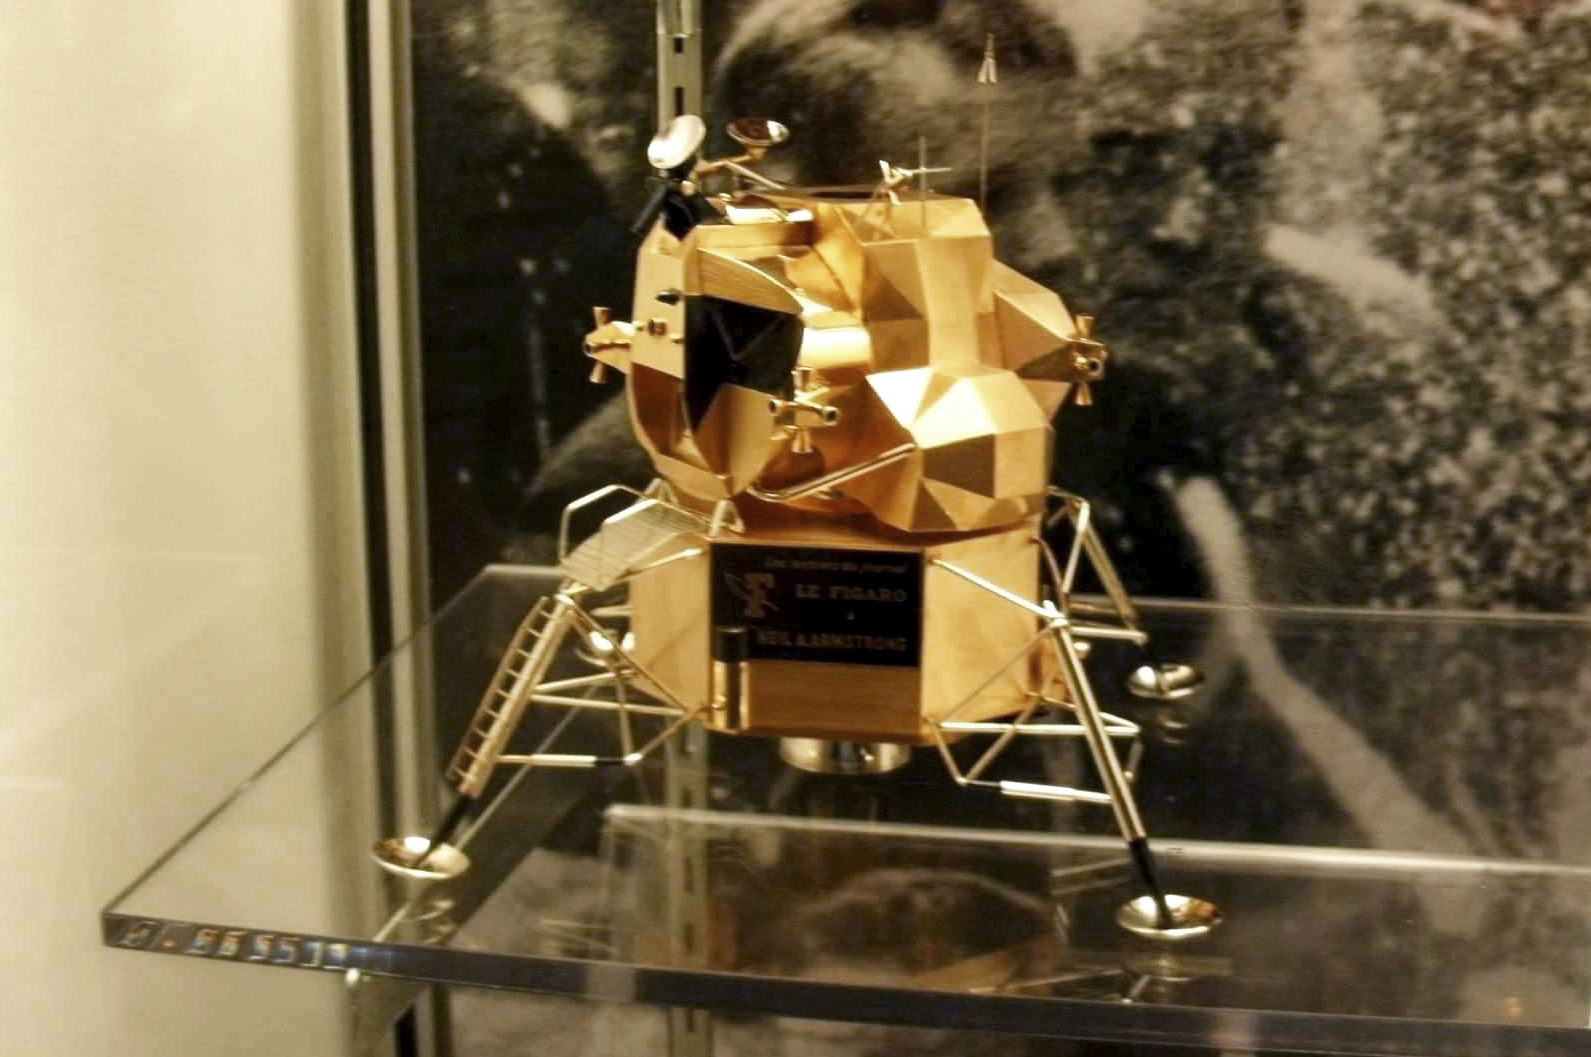 A lunar module replica at Armstrong Air and Space Museum in Wapakoneta, Ohio. Police say the rare gold replica of the lunar space module has been stolen from the museum.